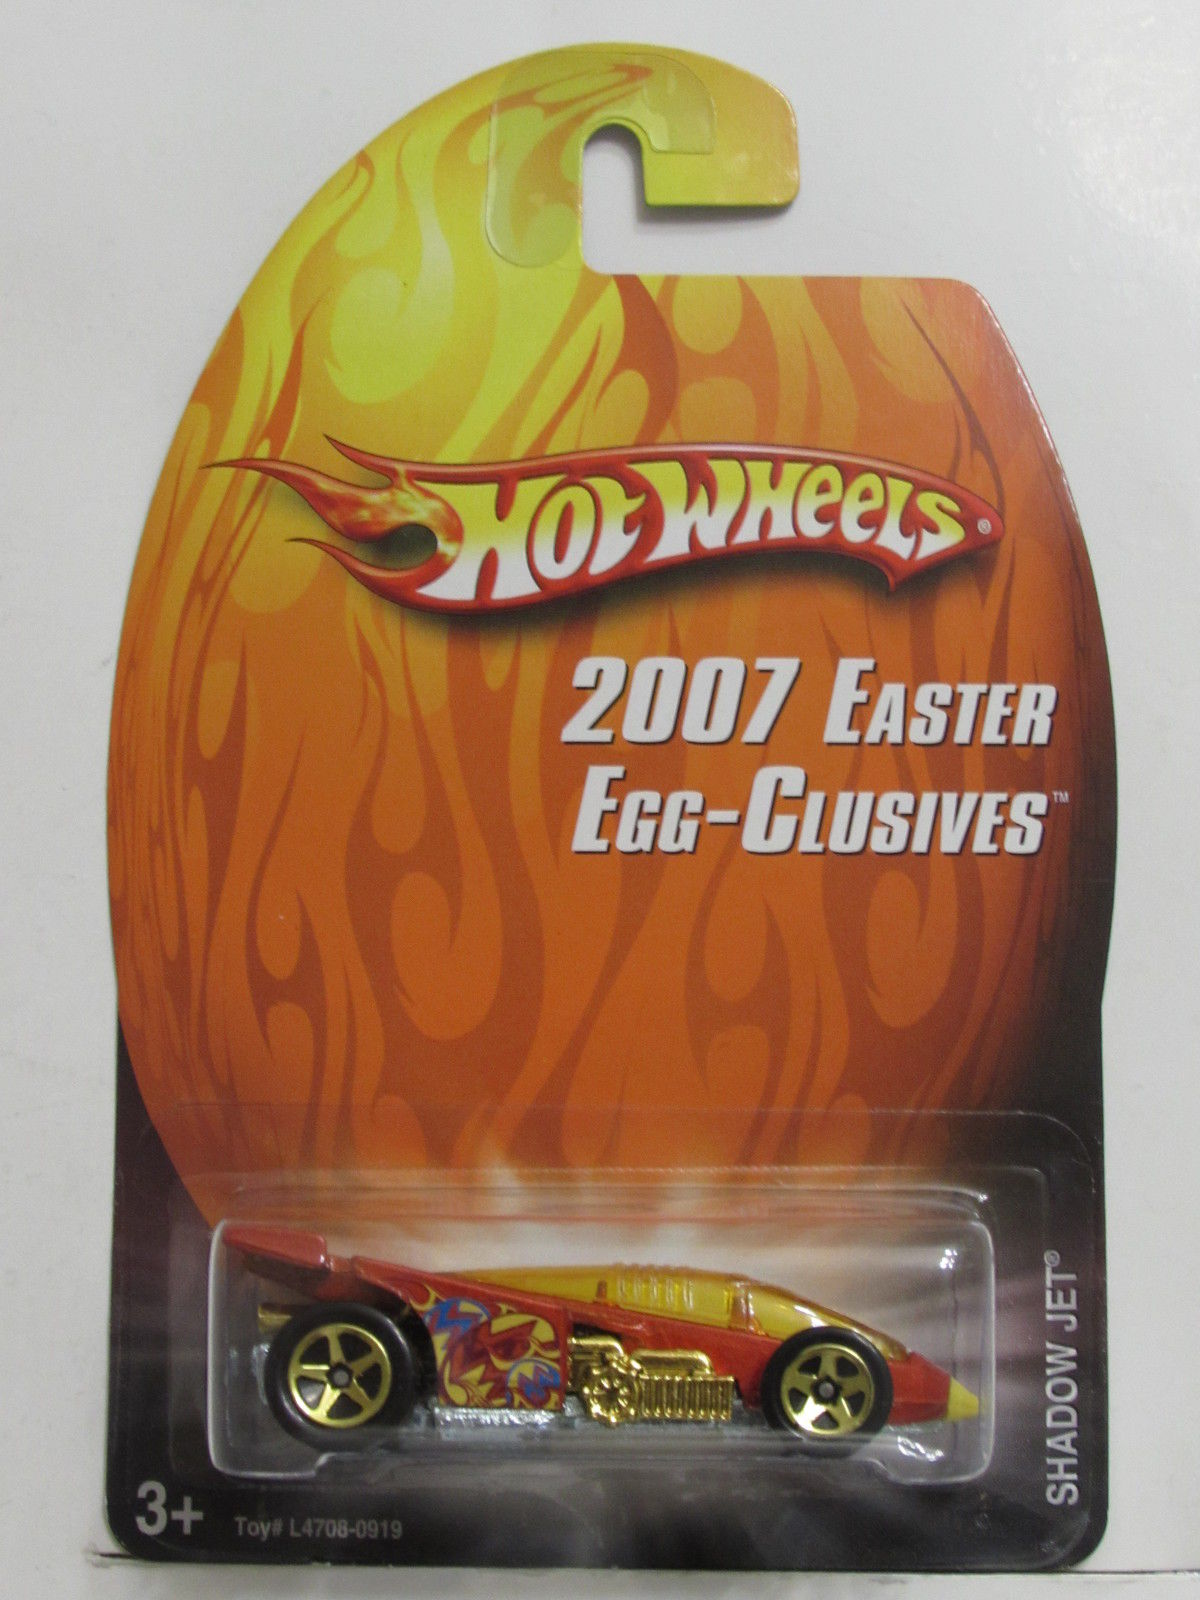 HOT WHEELS 2007 EASTER EGG-CLUSIVES SHADOW JET